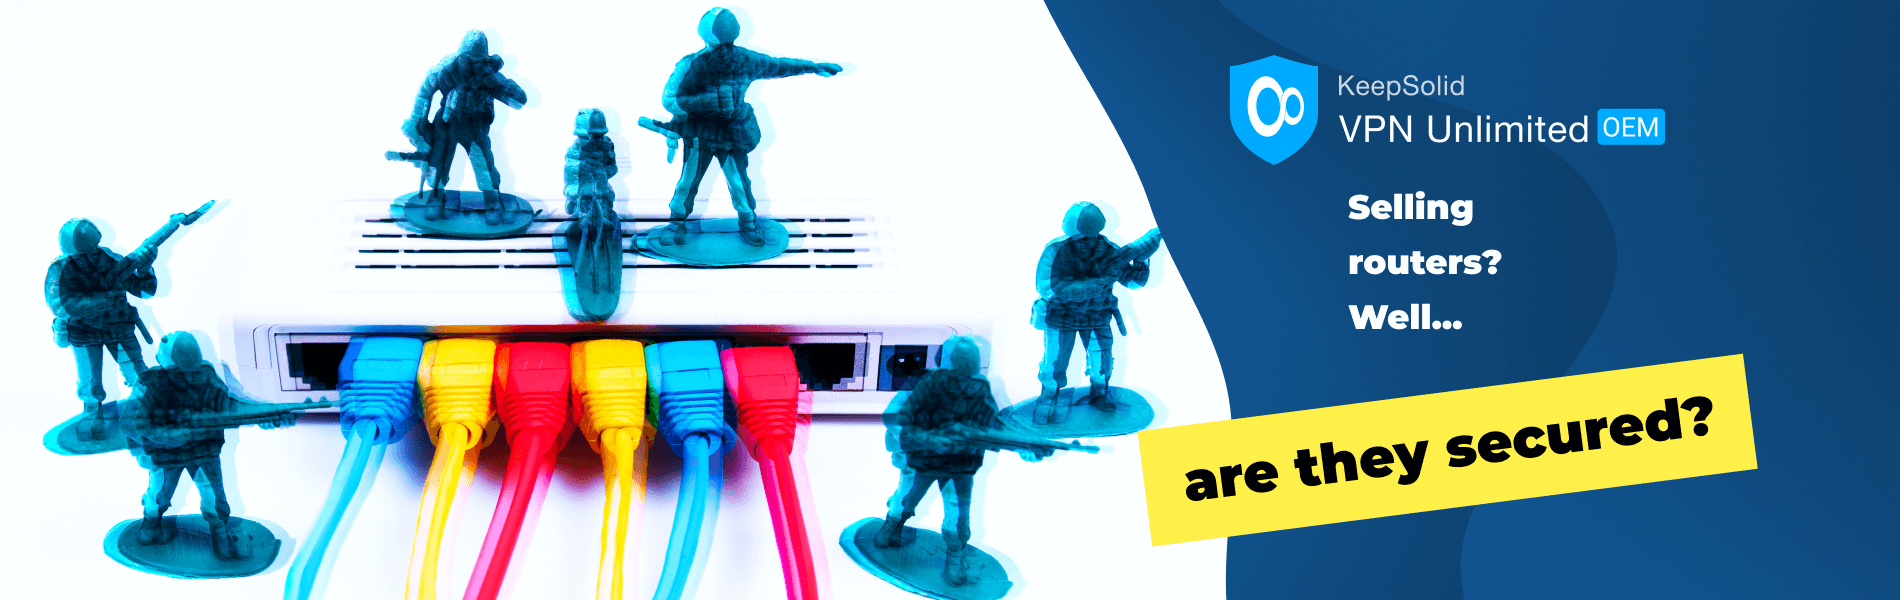 Network security with toy soldiers guarding router like VPN Unlimited OEM for routers